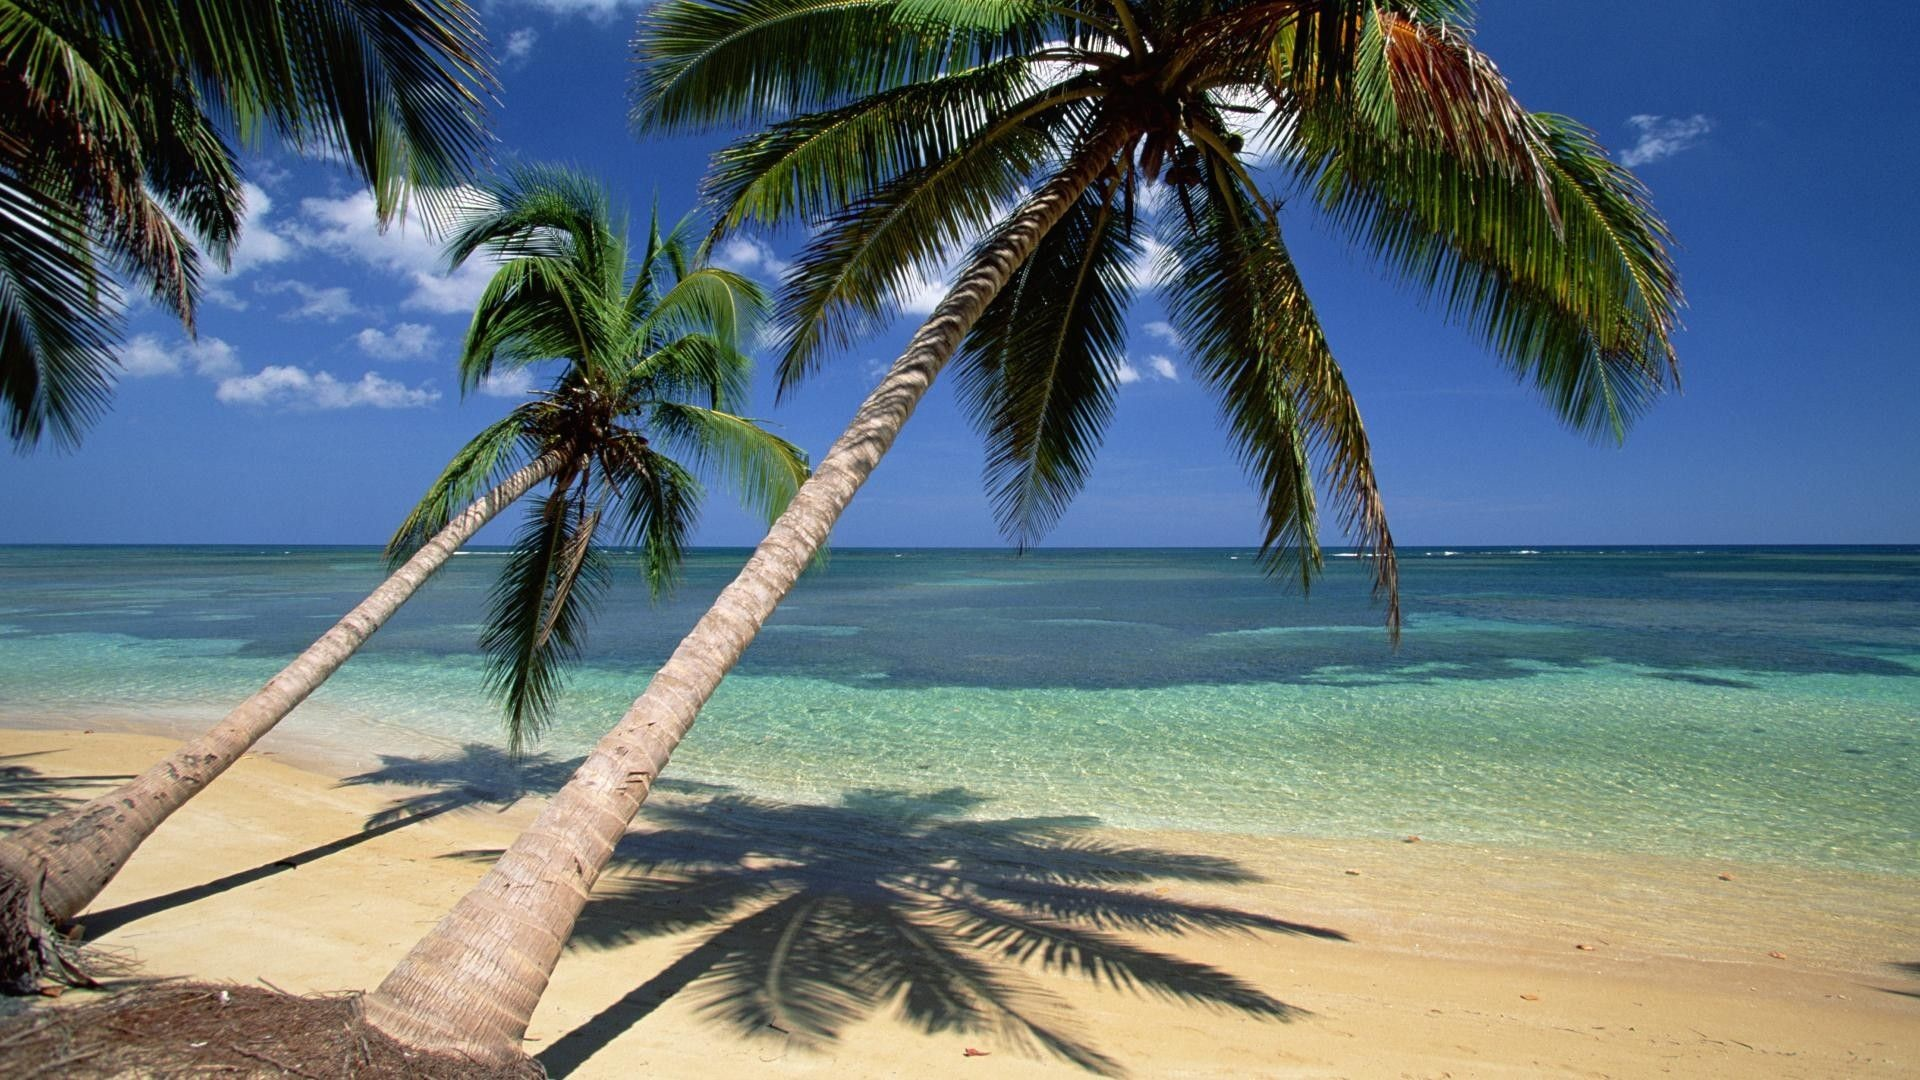 Dominican Republic Wallpapers (58+ images)